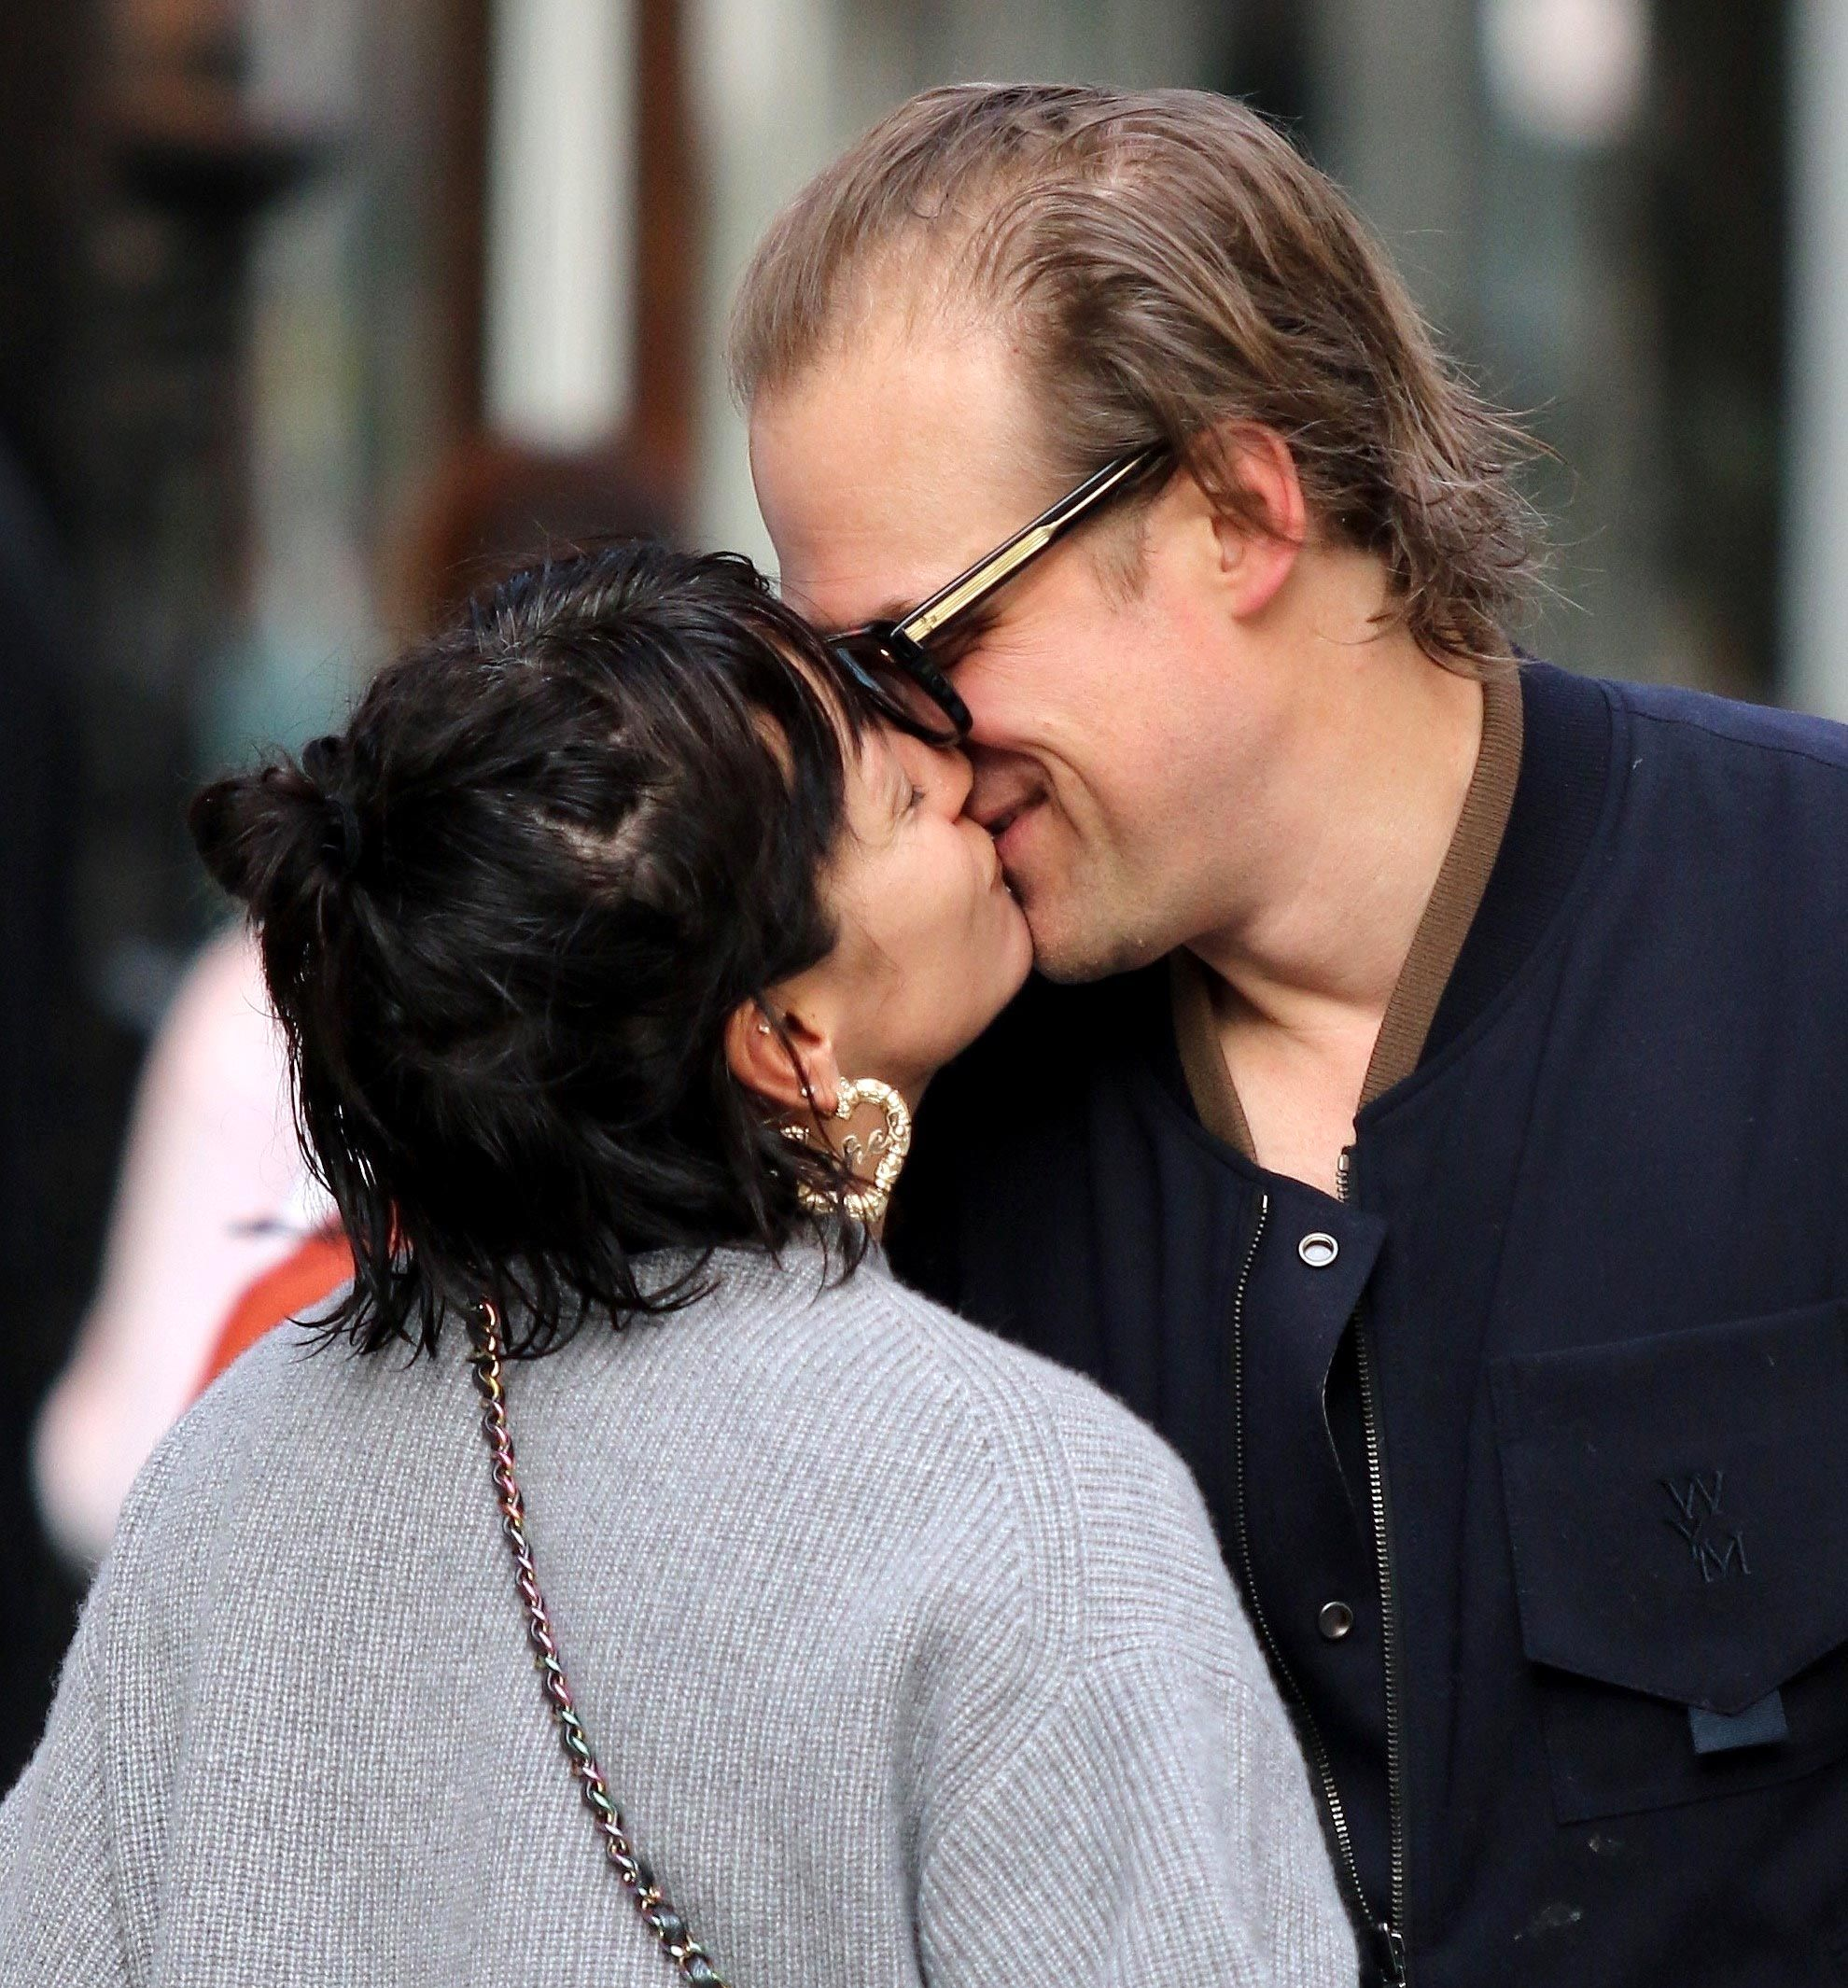 Stranger Things' David Harbour confirms Lily Allen romance with kissing photos